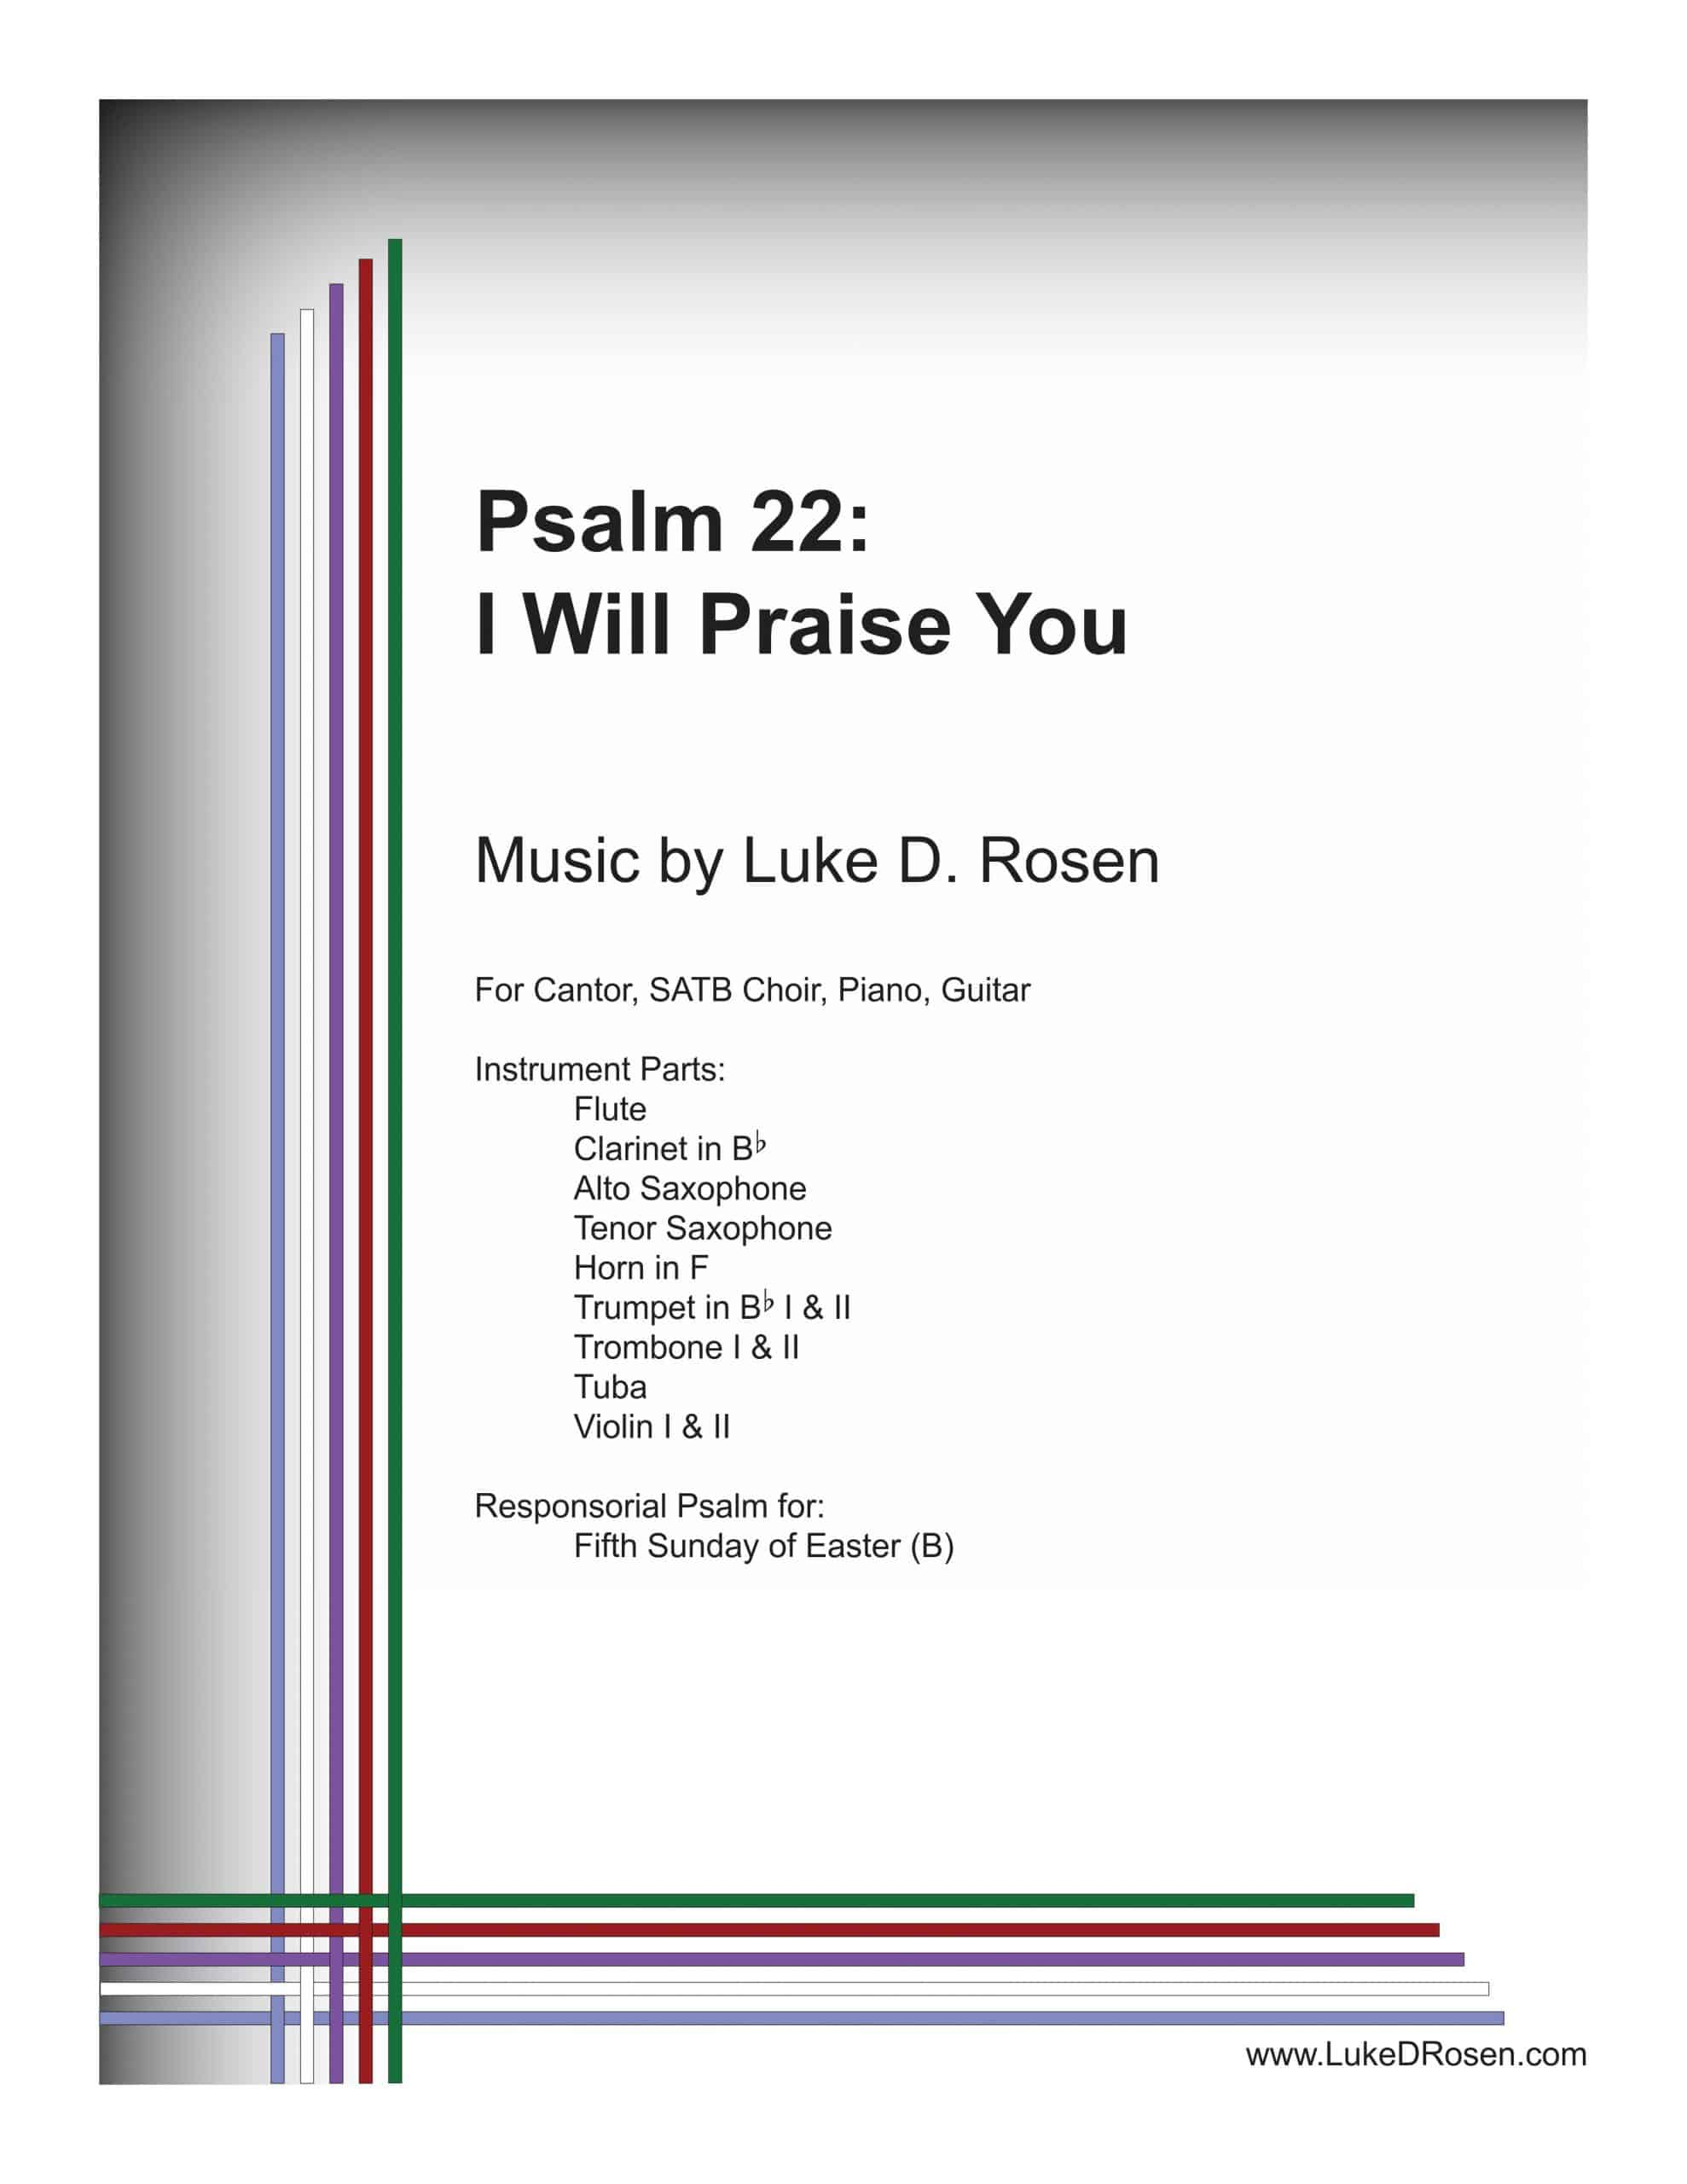 Psalm 22 I Will Praise You ROSEN Sample Musicians Parts scaled